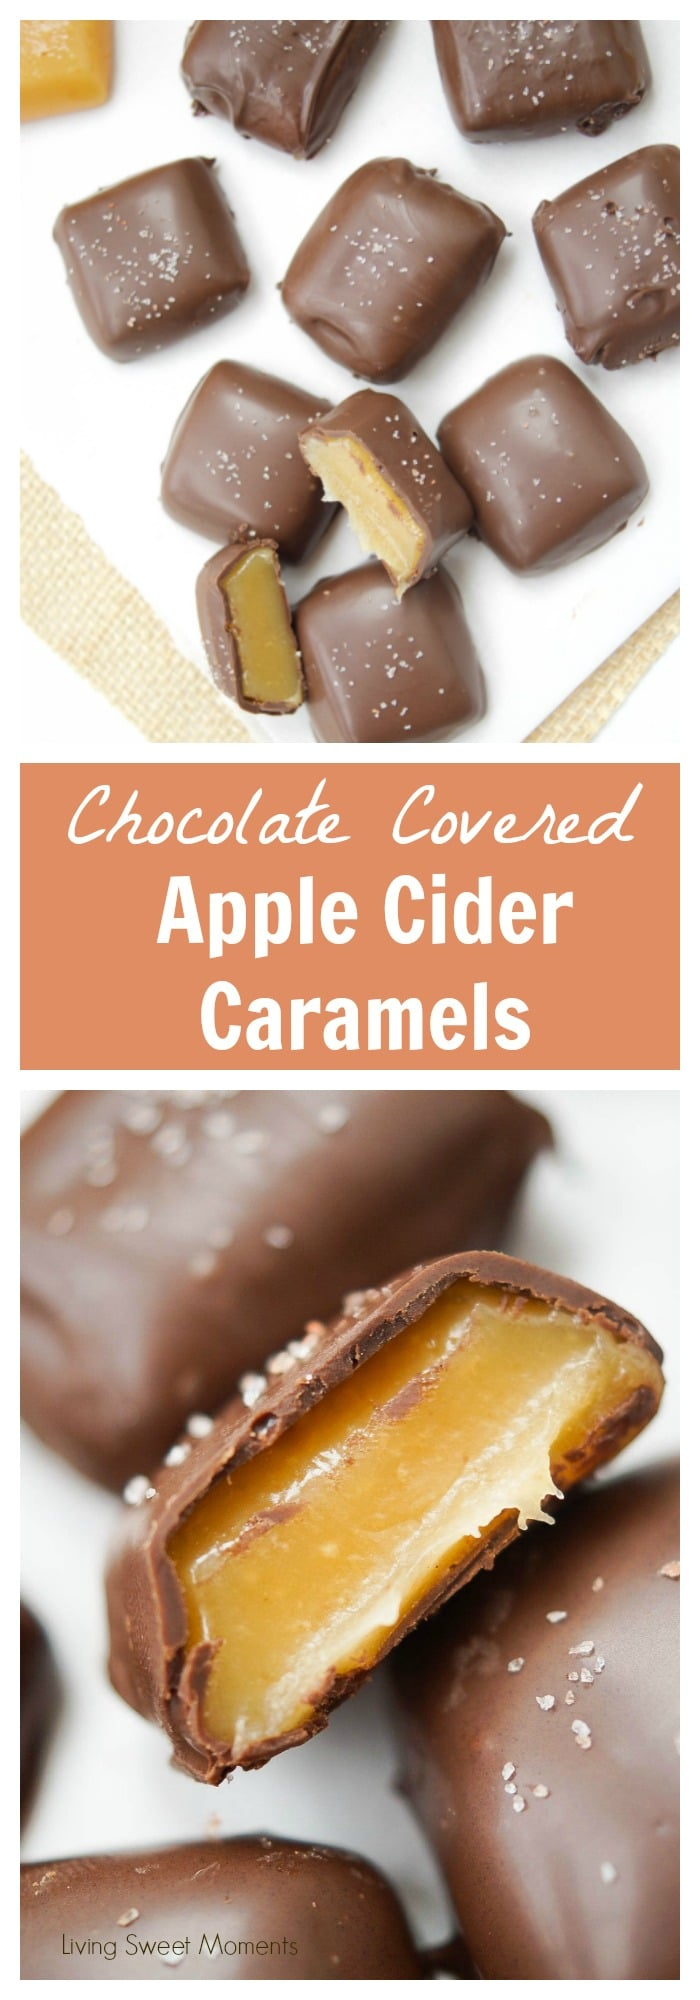 ... apple cider caramels this chocolate covered apple cider caramels